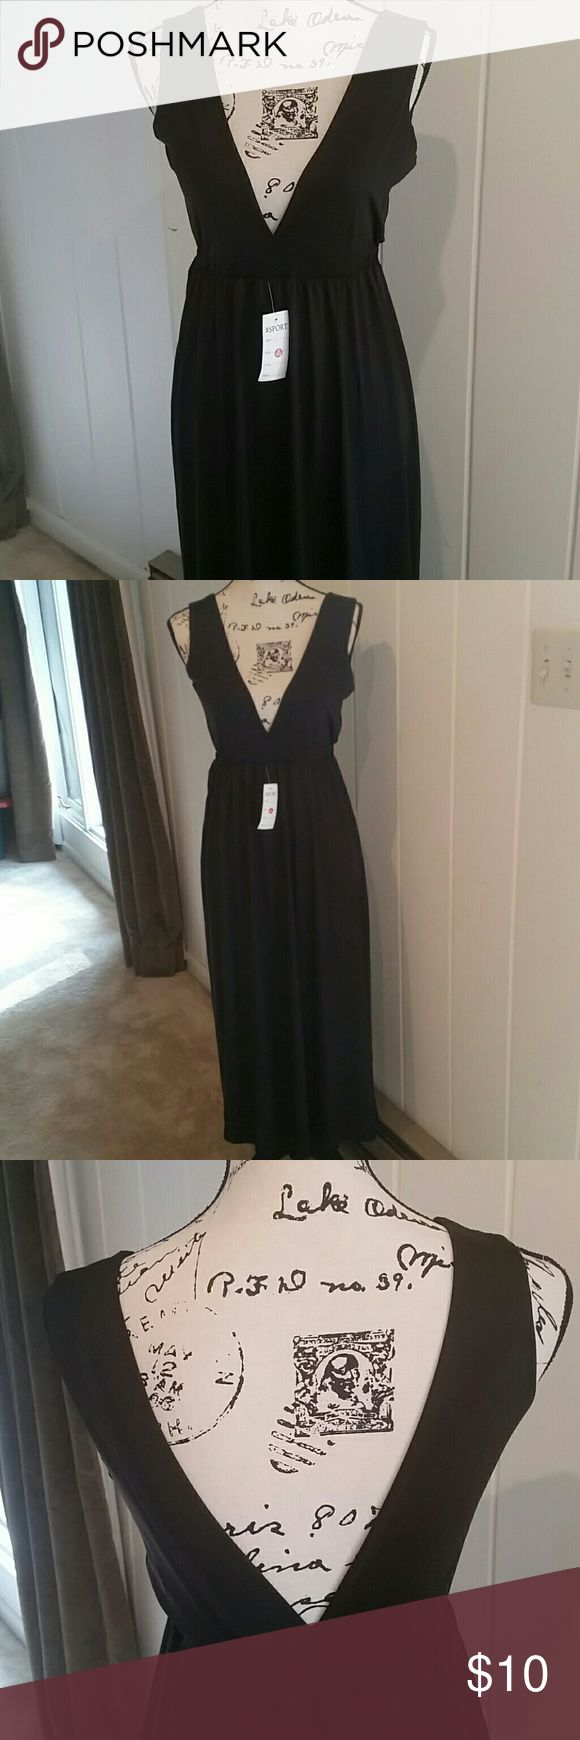 Now 10 little black dresses for - Perfect Little Black Dress Nwt Nwt